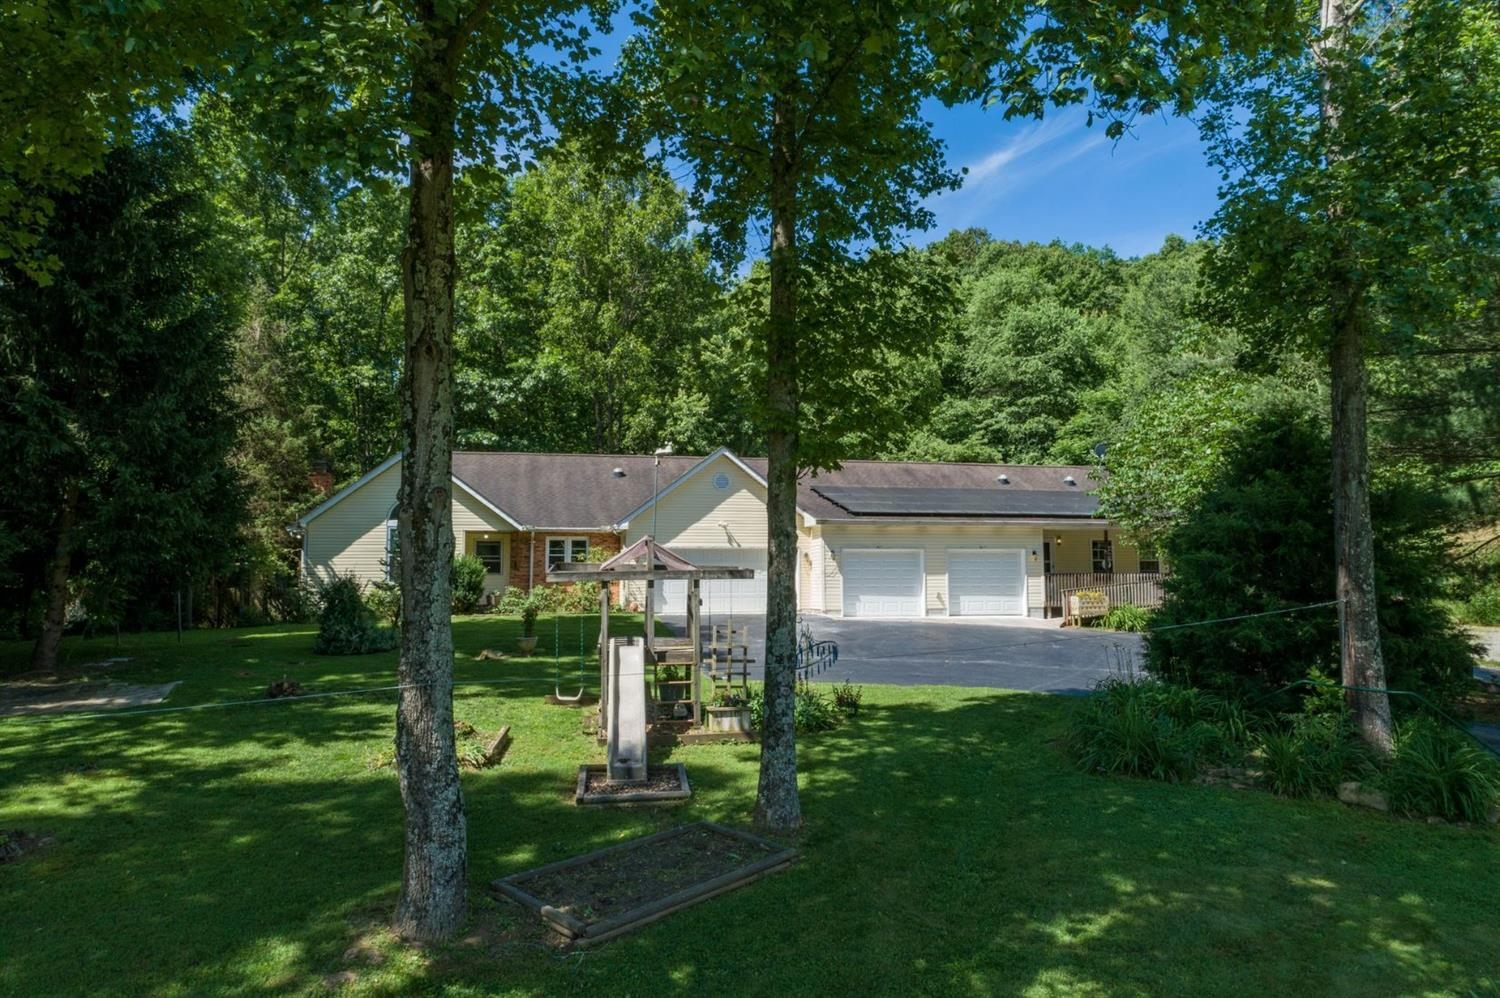 2219 Morgan Fork Rd Pike County, OH